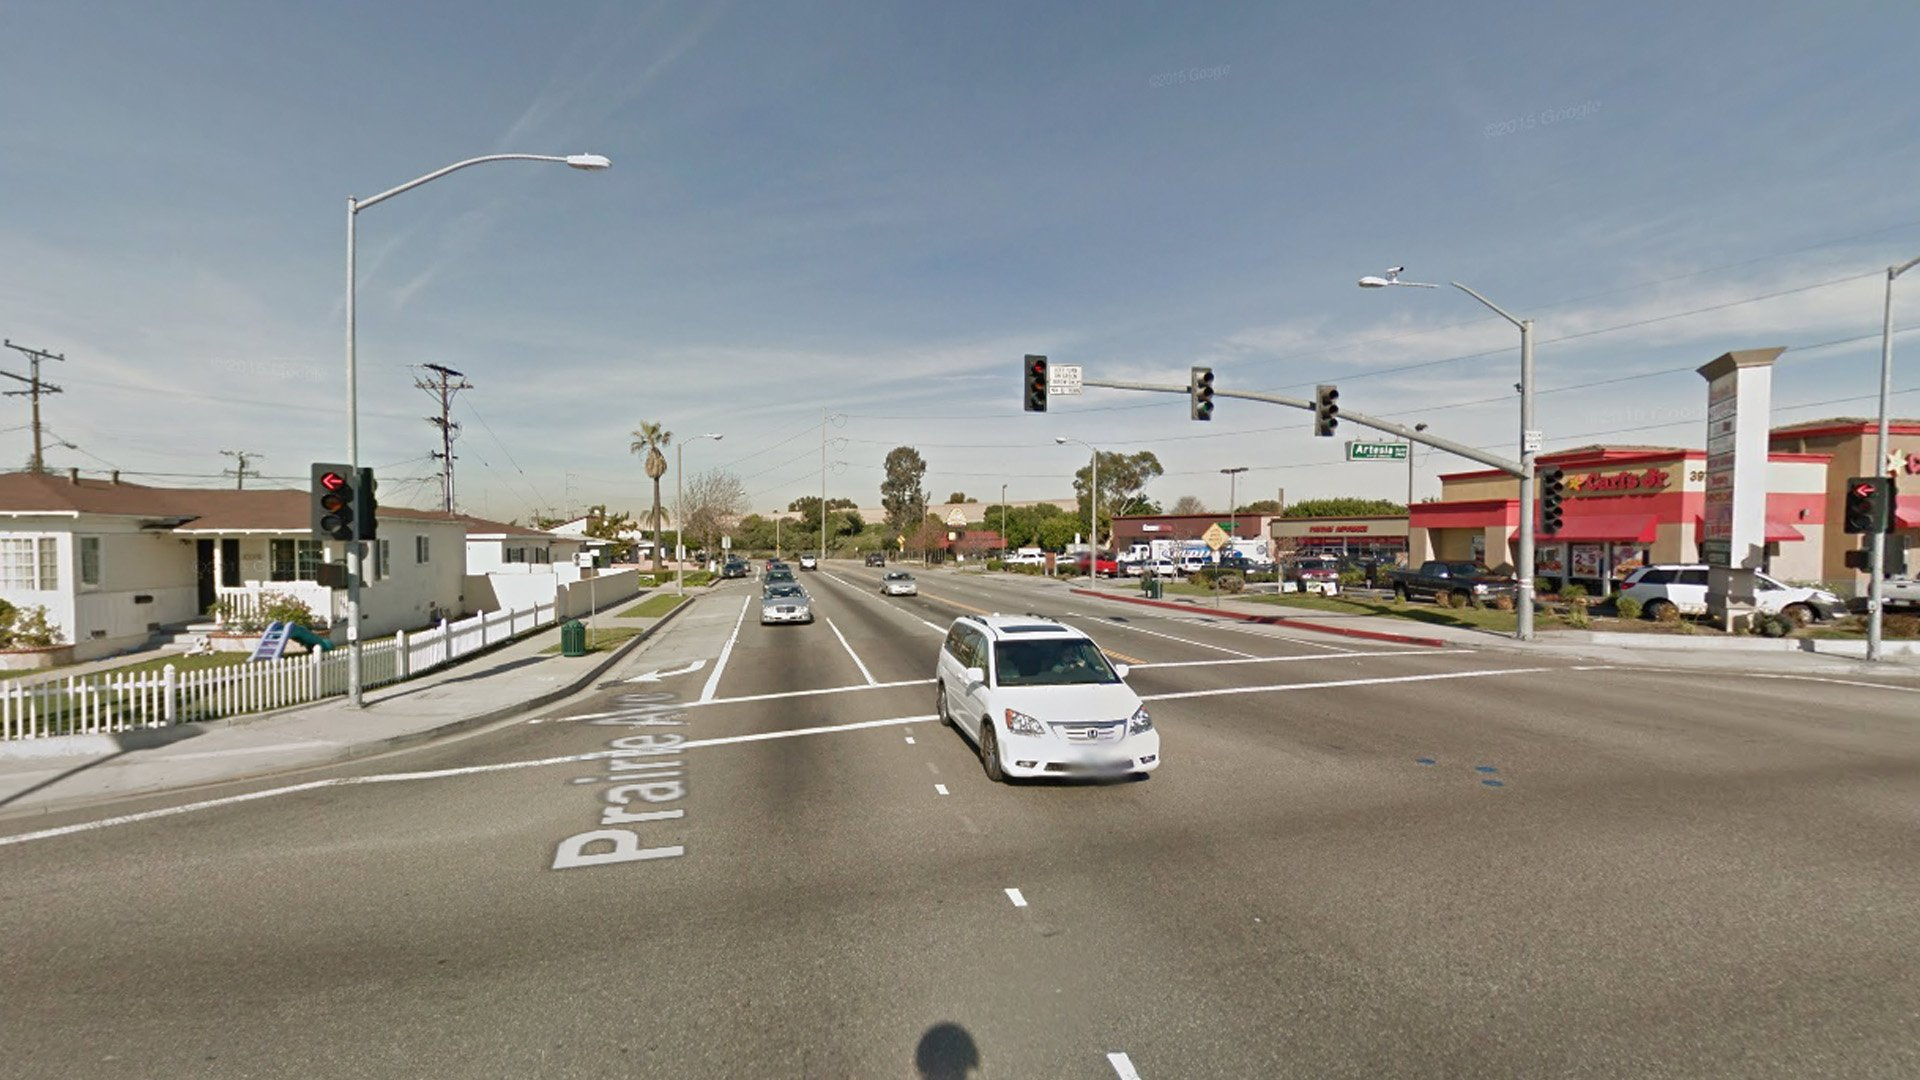 The intersection of Prairie Avenue and Artesia Boulevard in Torrance is seen in a photo from Google Maps.